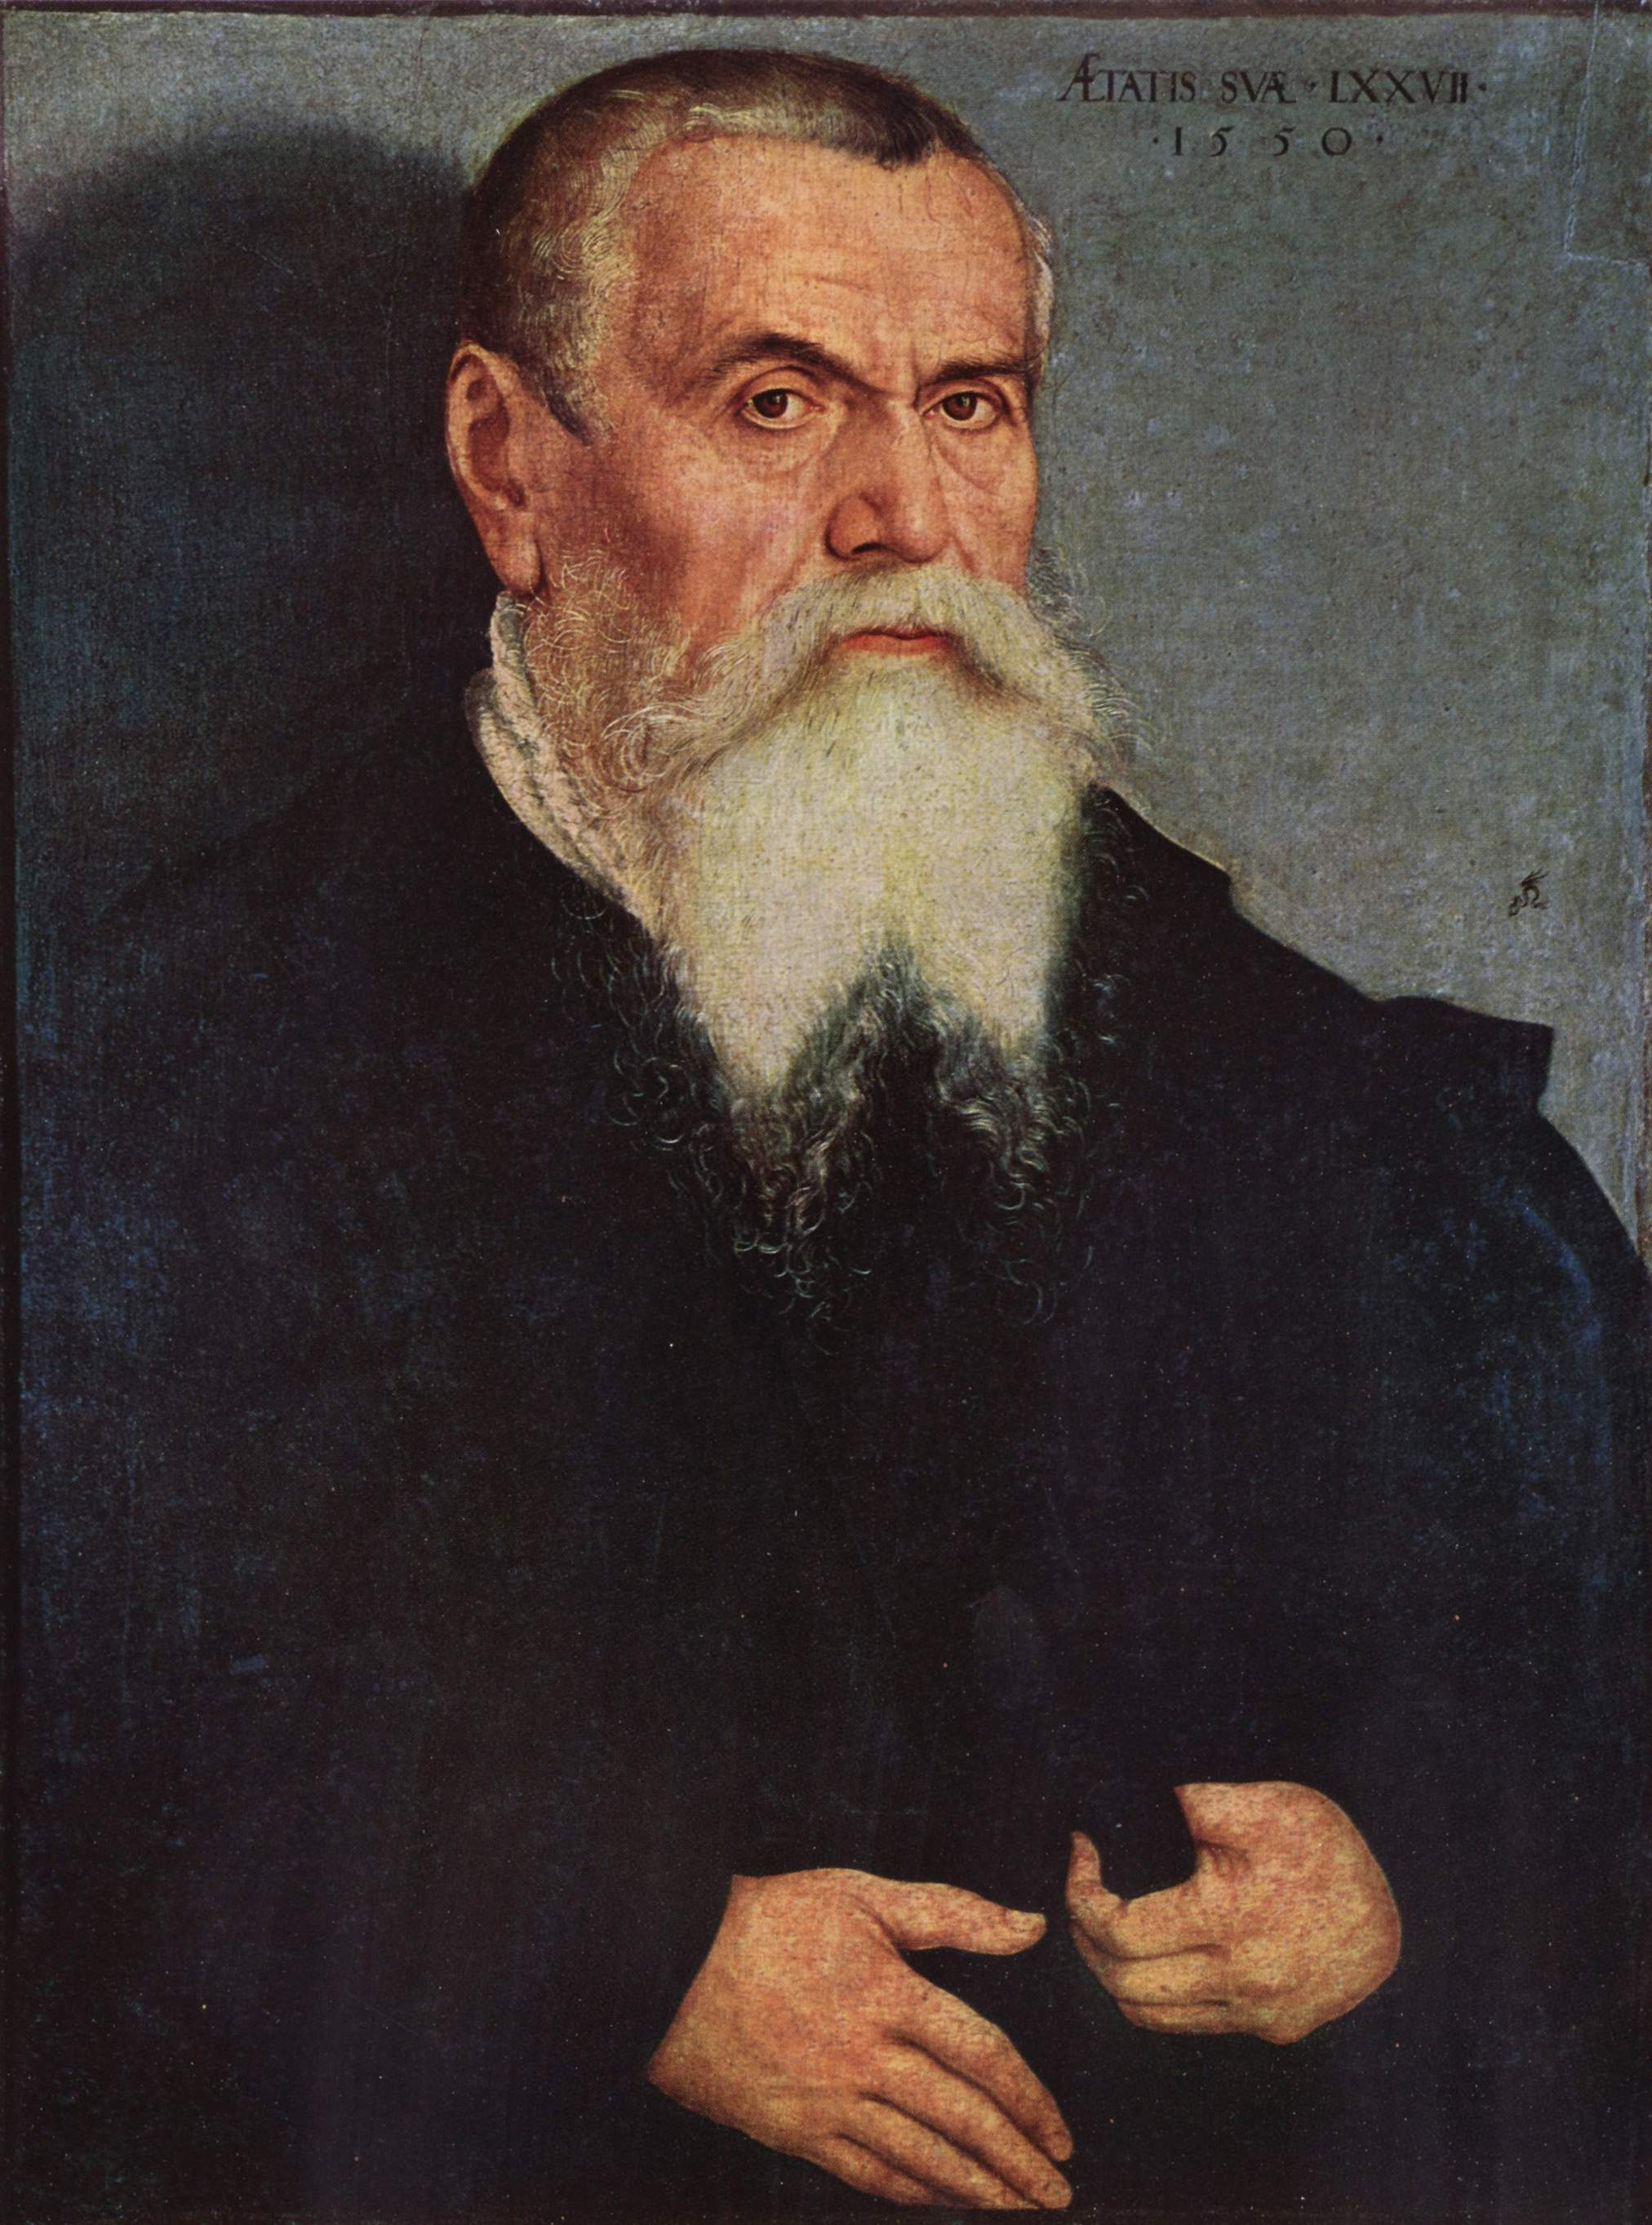 Cranach: Luther's Painter